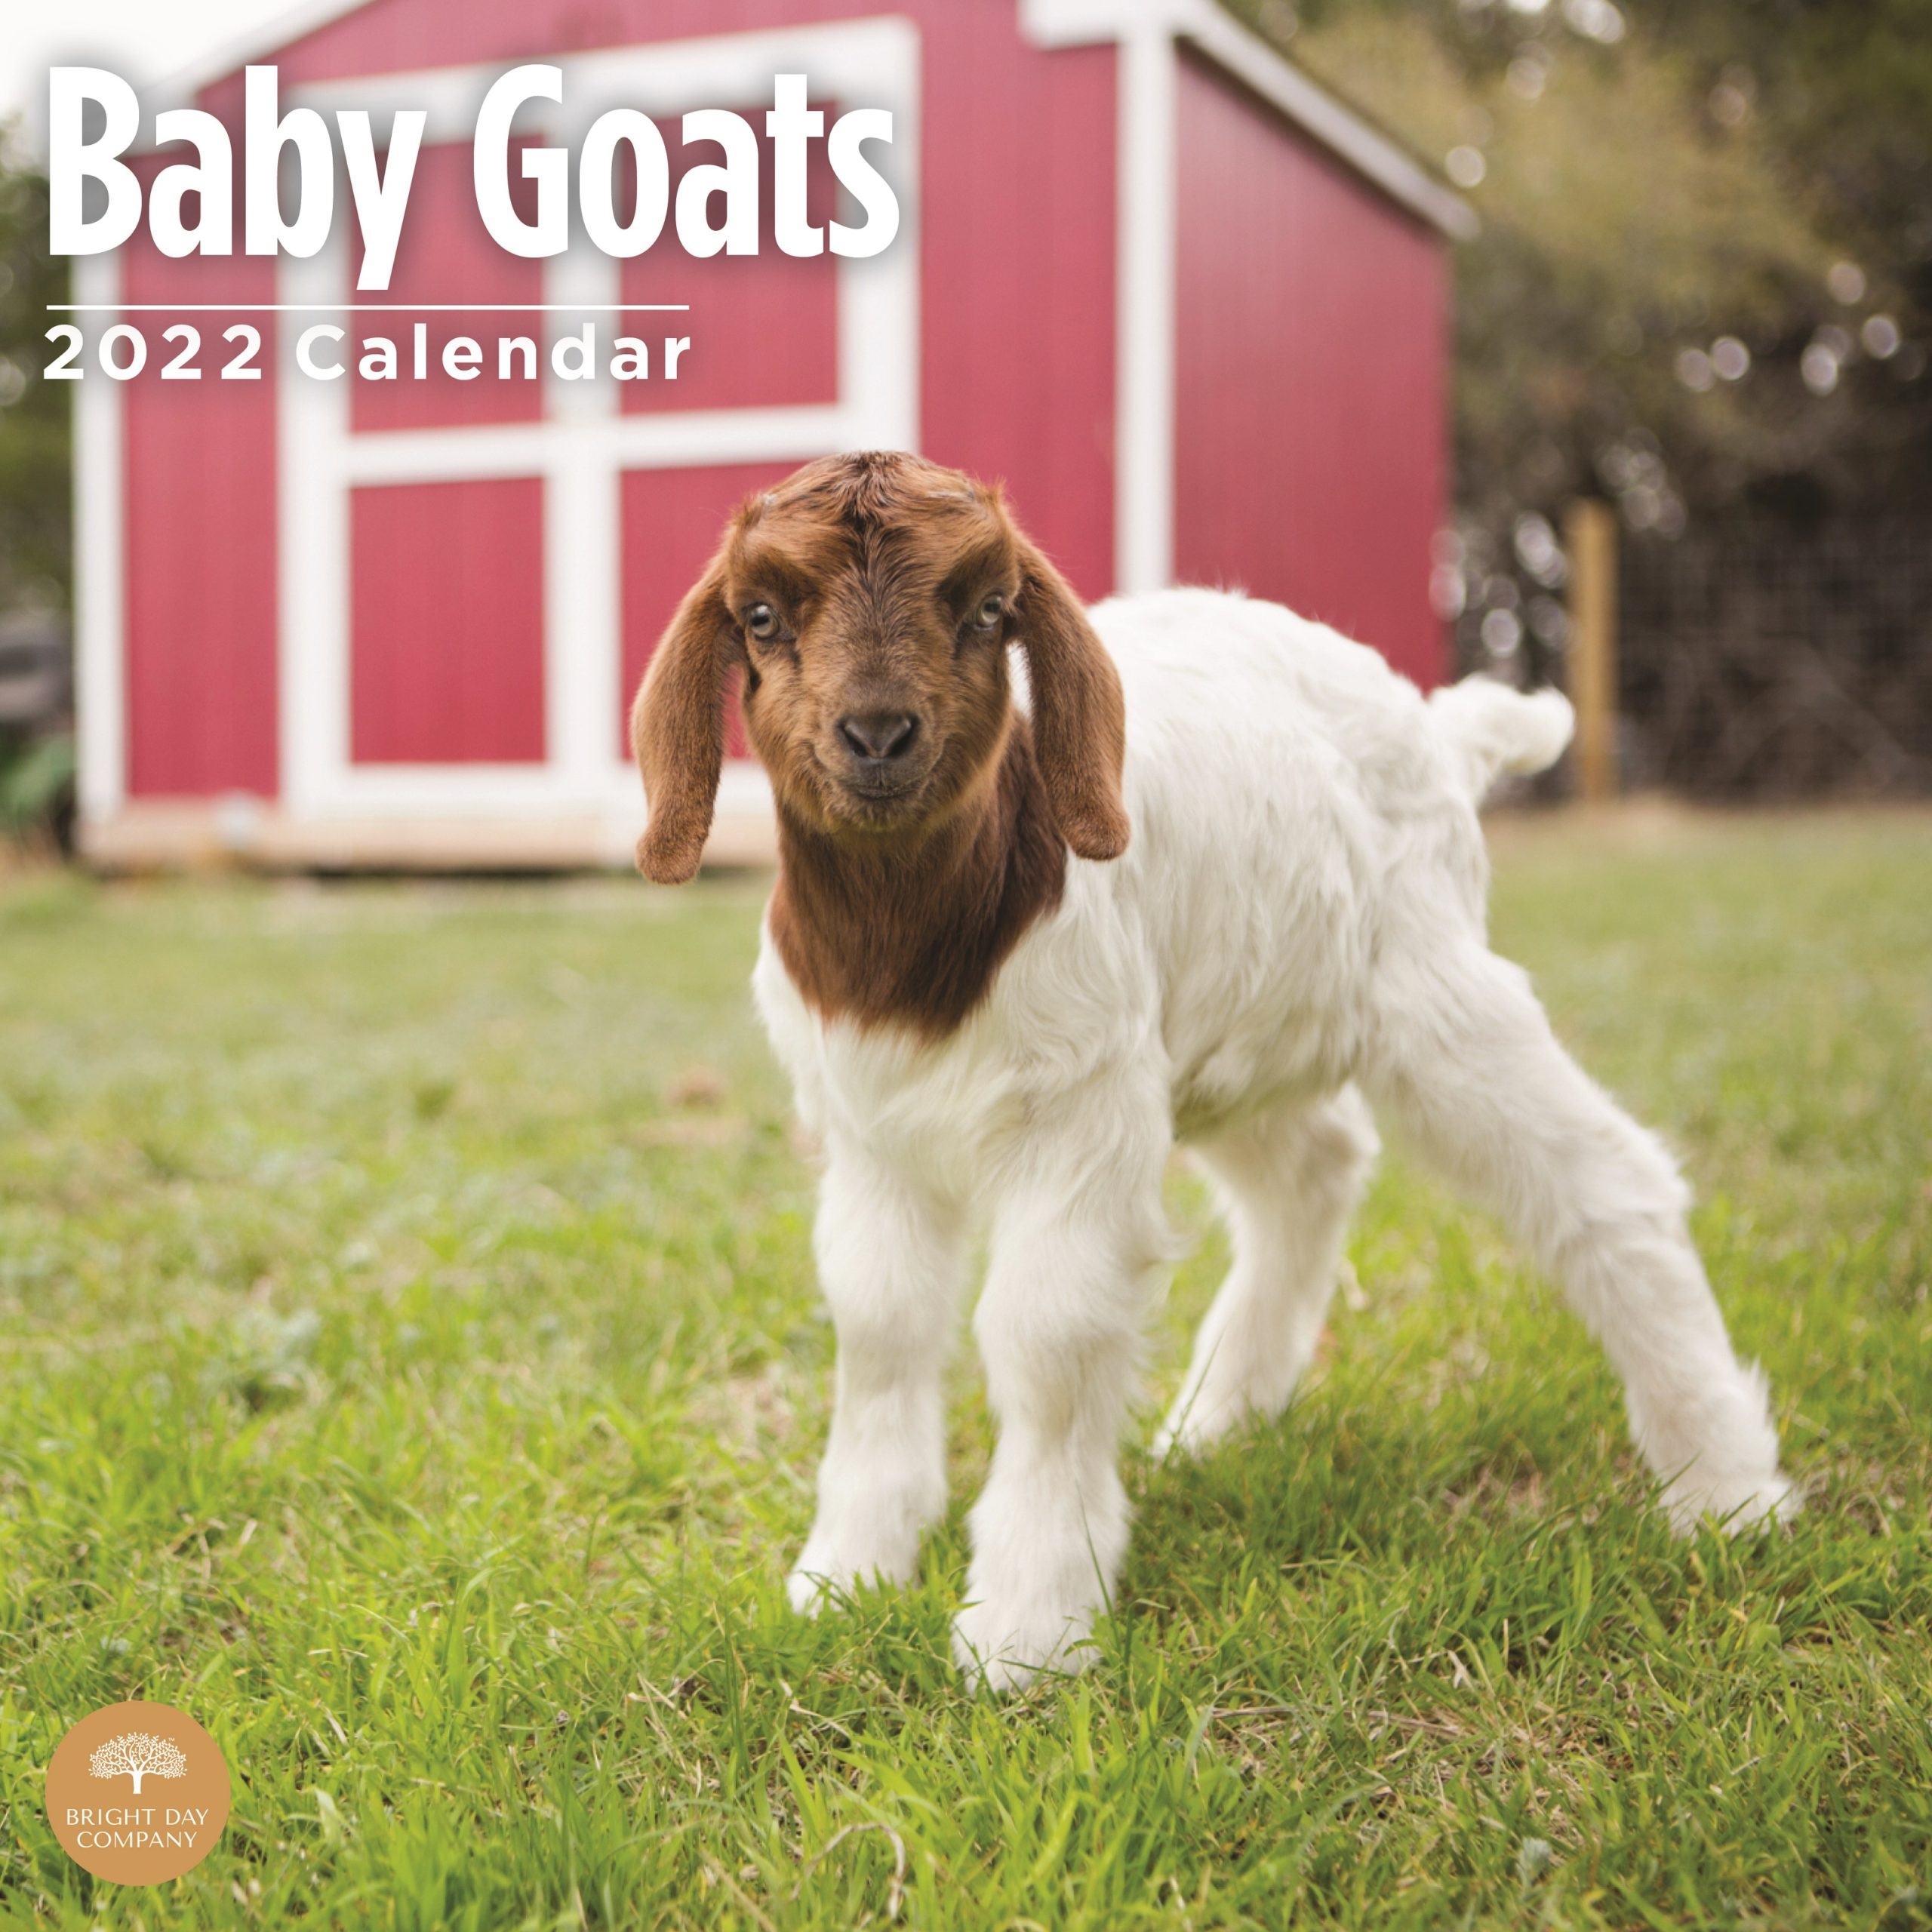 2022 Baby Goats Wall Calendar by Bright Day, 12 x 12 Inch